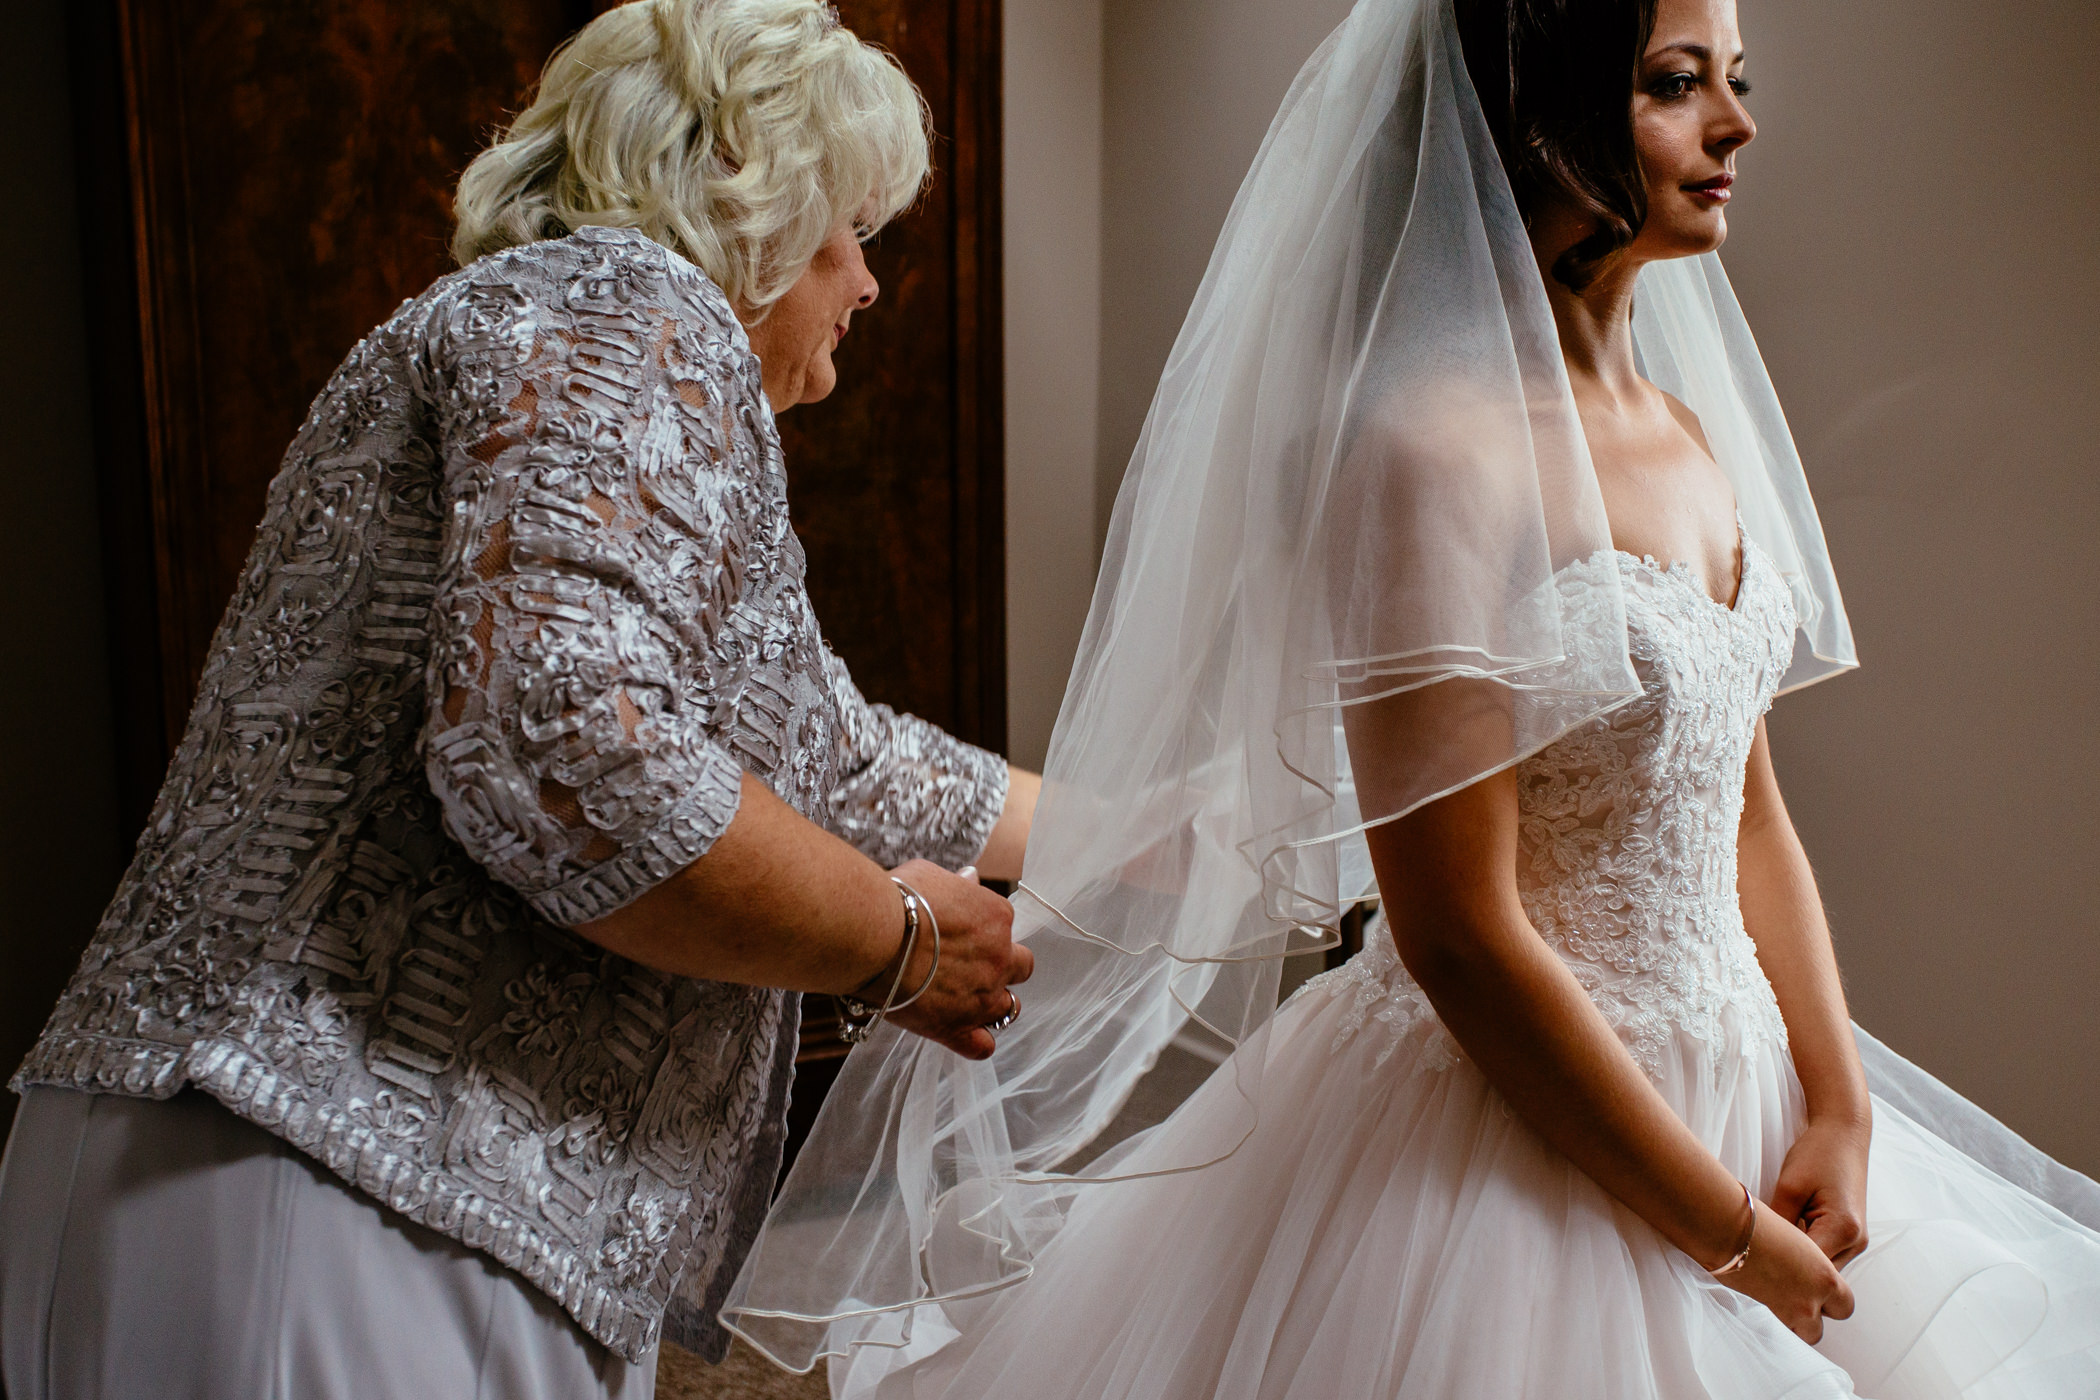 sansom-photography-becky-david-cheshire-wedding-7